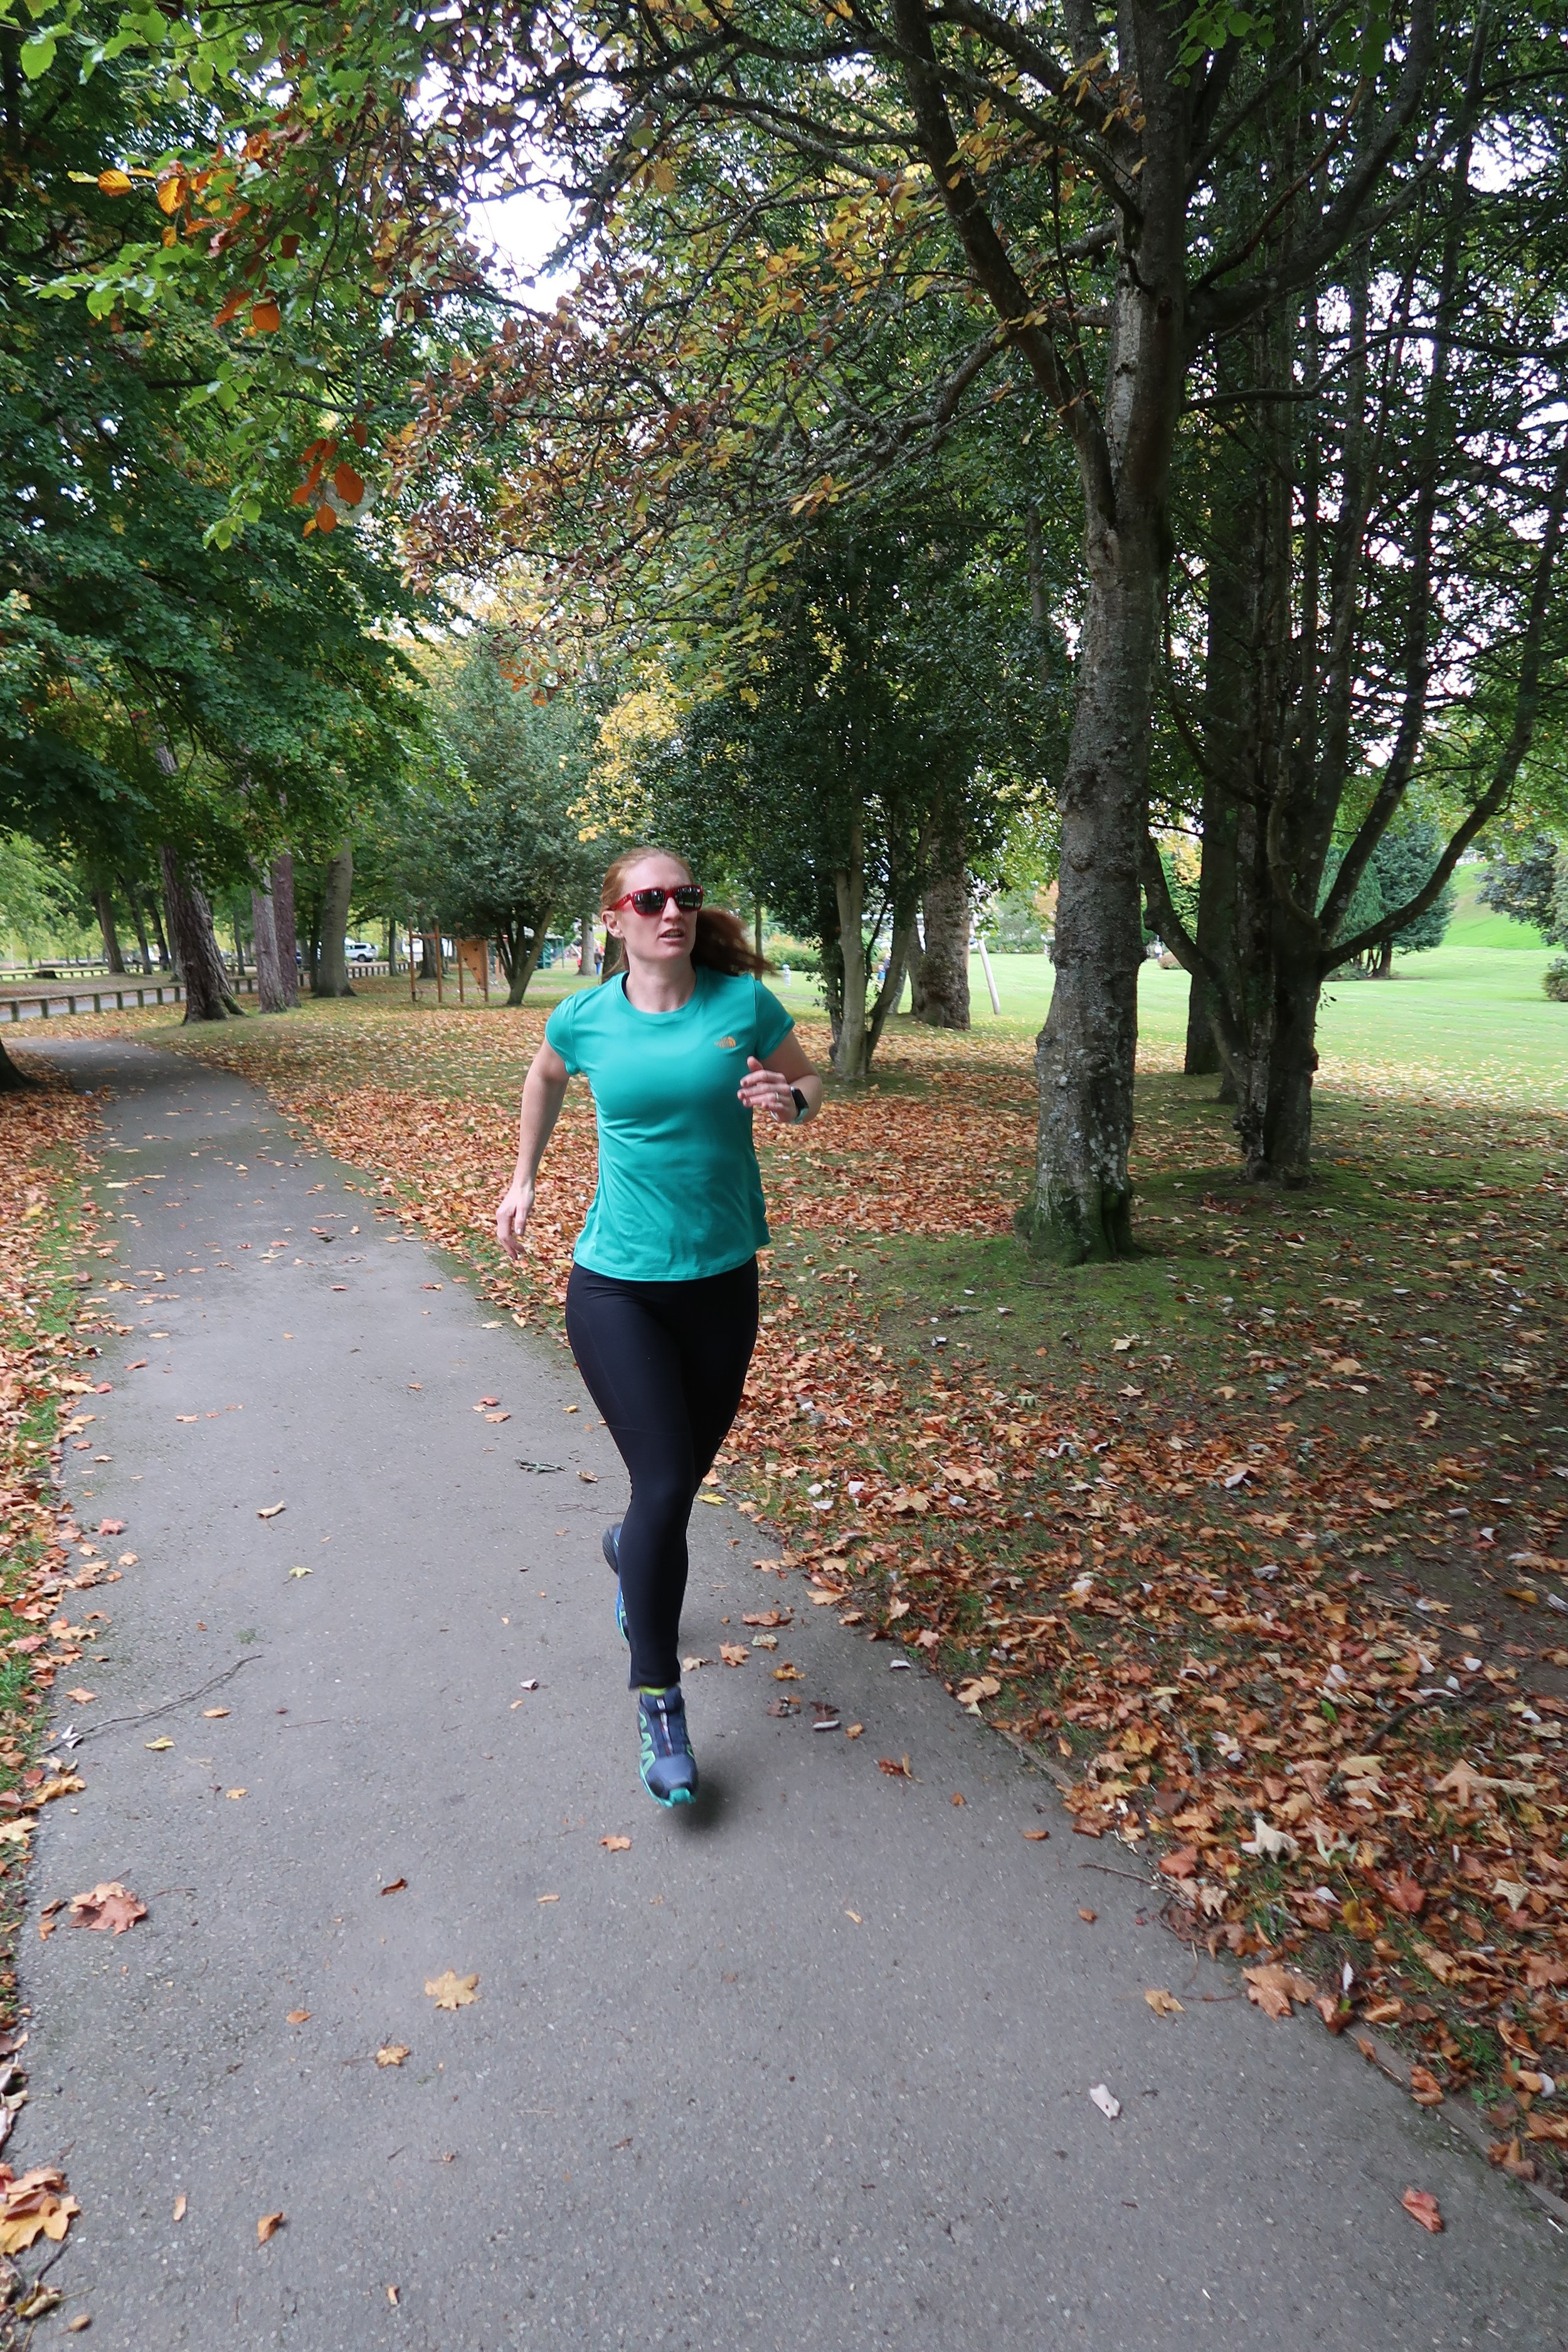 Fartlek helps to keep a session interesting and varied, give it a go running between trees!